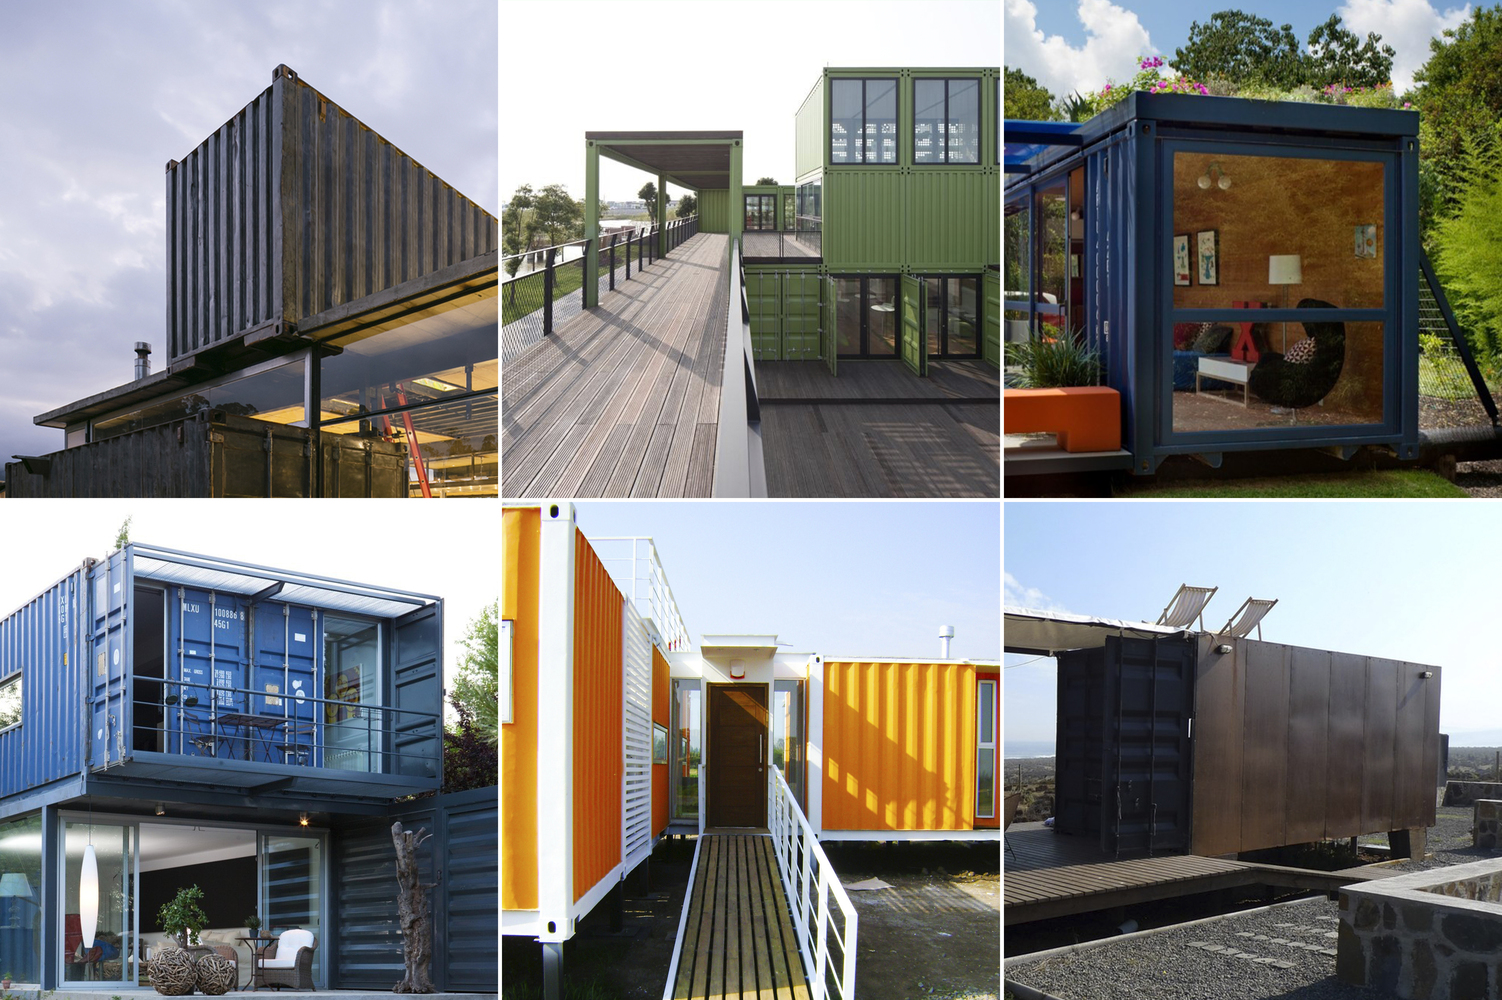 Best Kitchen Gallery: Gallery Of Method In Modular 10 Floor Plans Using Shipping of Shipping Container Architecture on rachelxblog.com